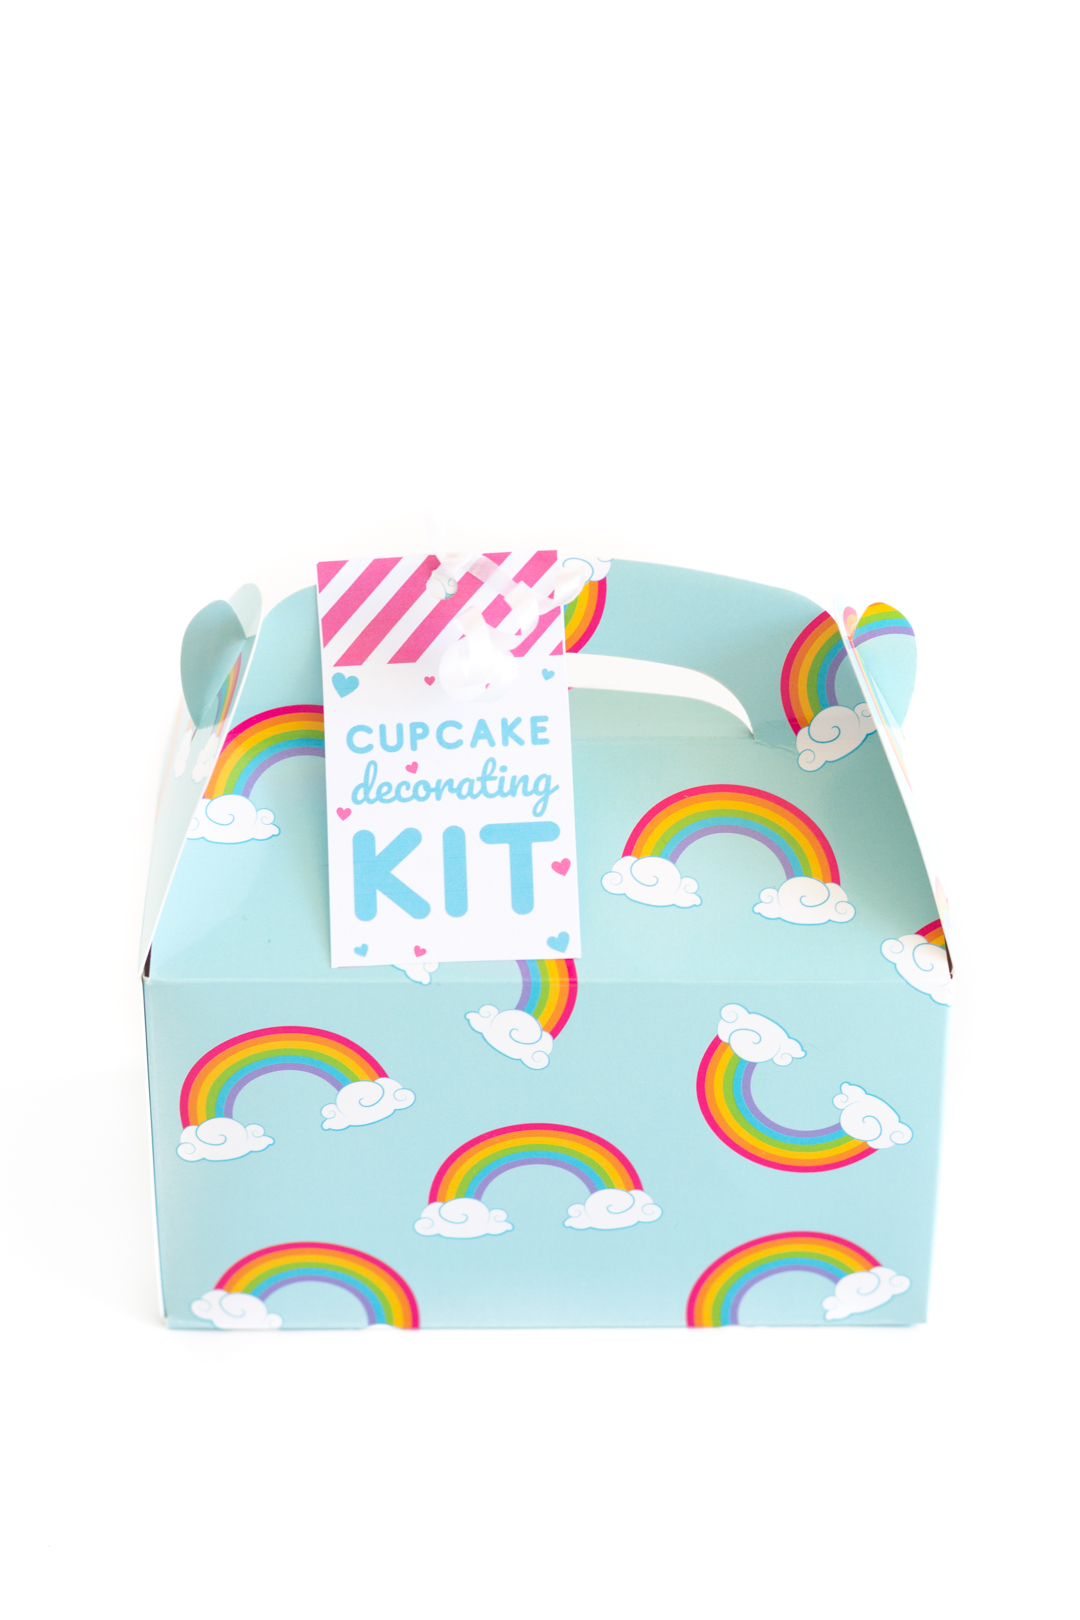 small rainbow treat box with a tag that reads cupcake decorating kit